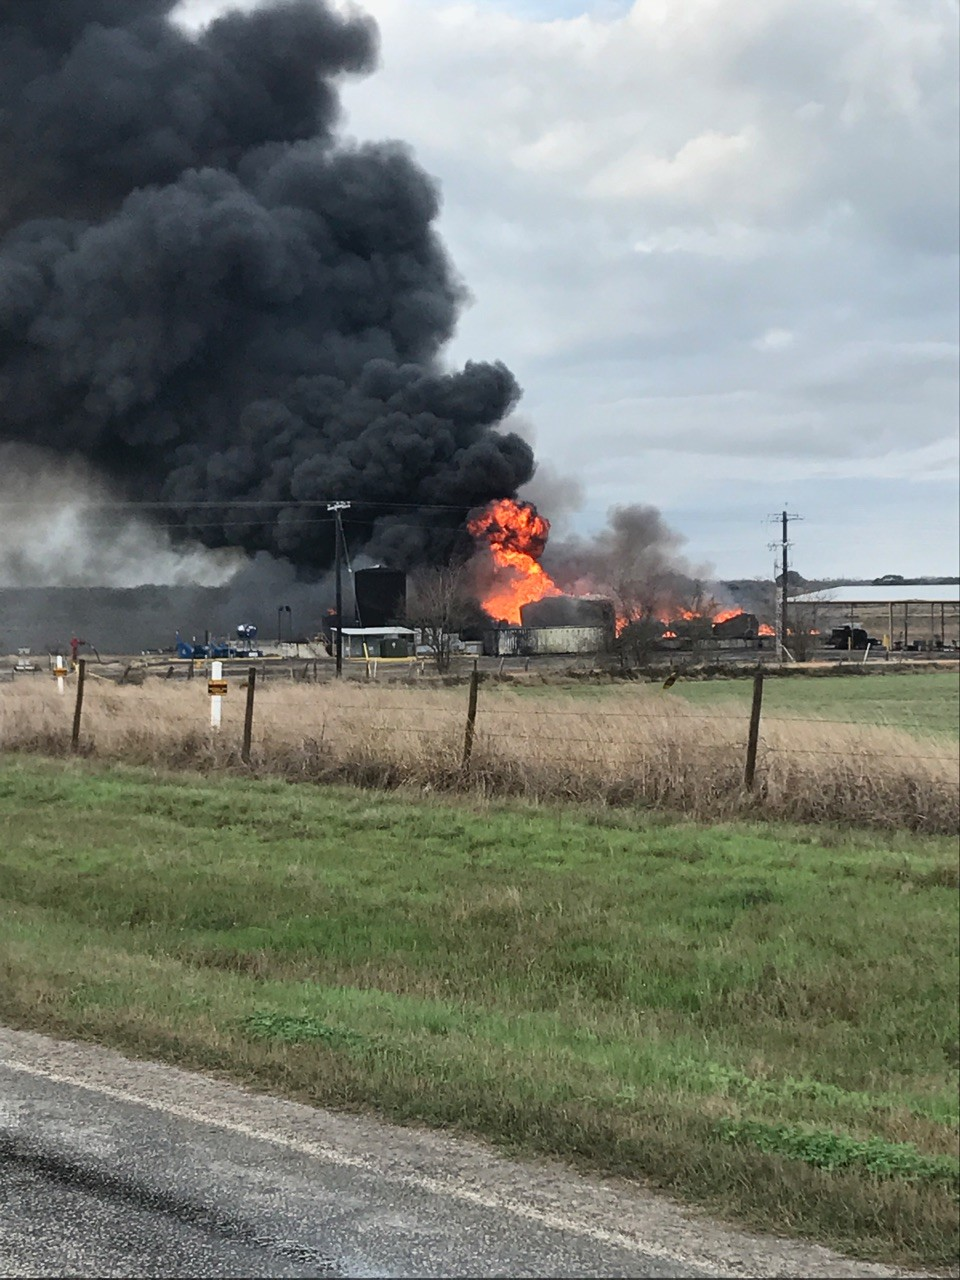 Fire blazes and smoke billows after a lightning strike caused an explosion at an oil storage facility at FM 1116 and CR 206 in southern Gonzales County at 7:30 a.m., on Sunday, Feb. 25. No one was injured in the explosion.